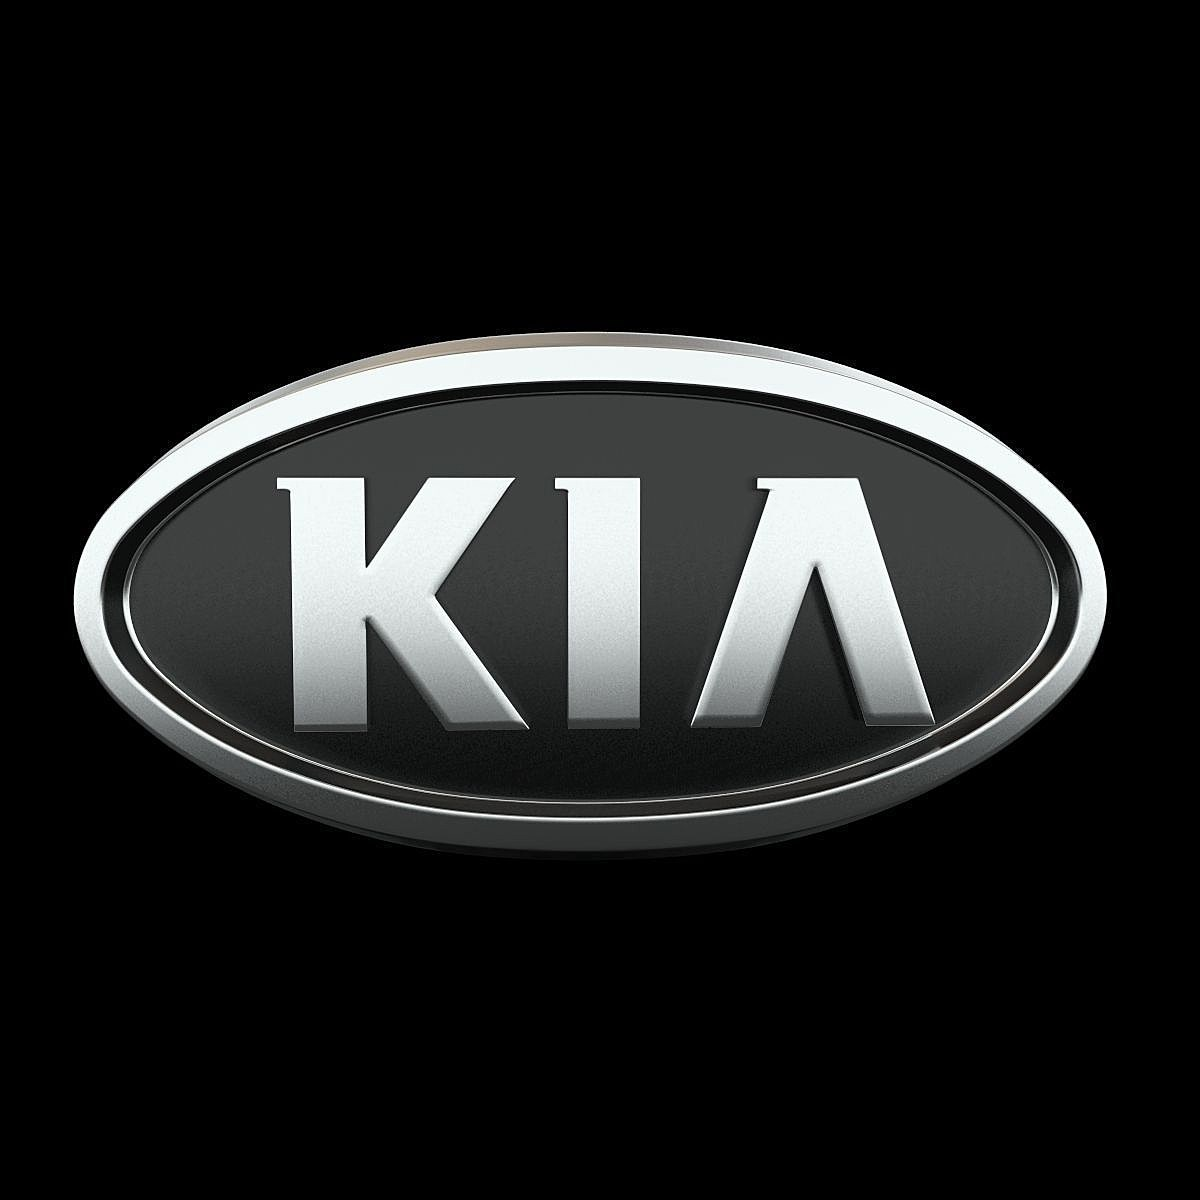 Manahawkin kia phone number